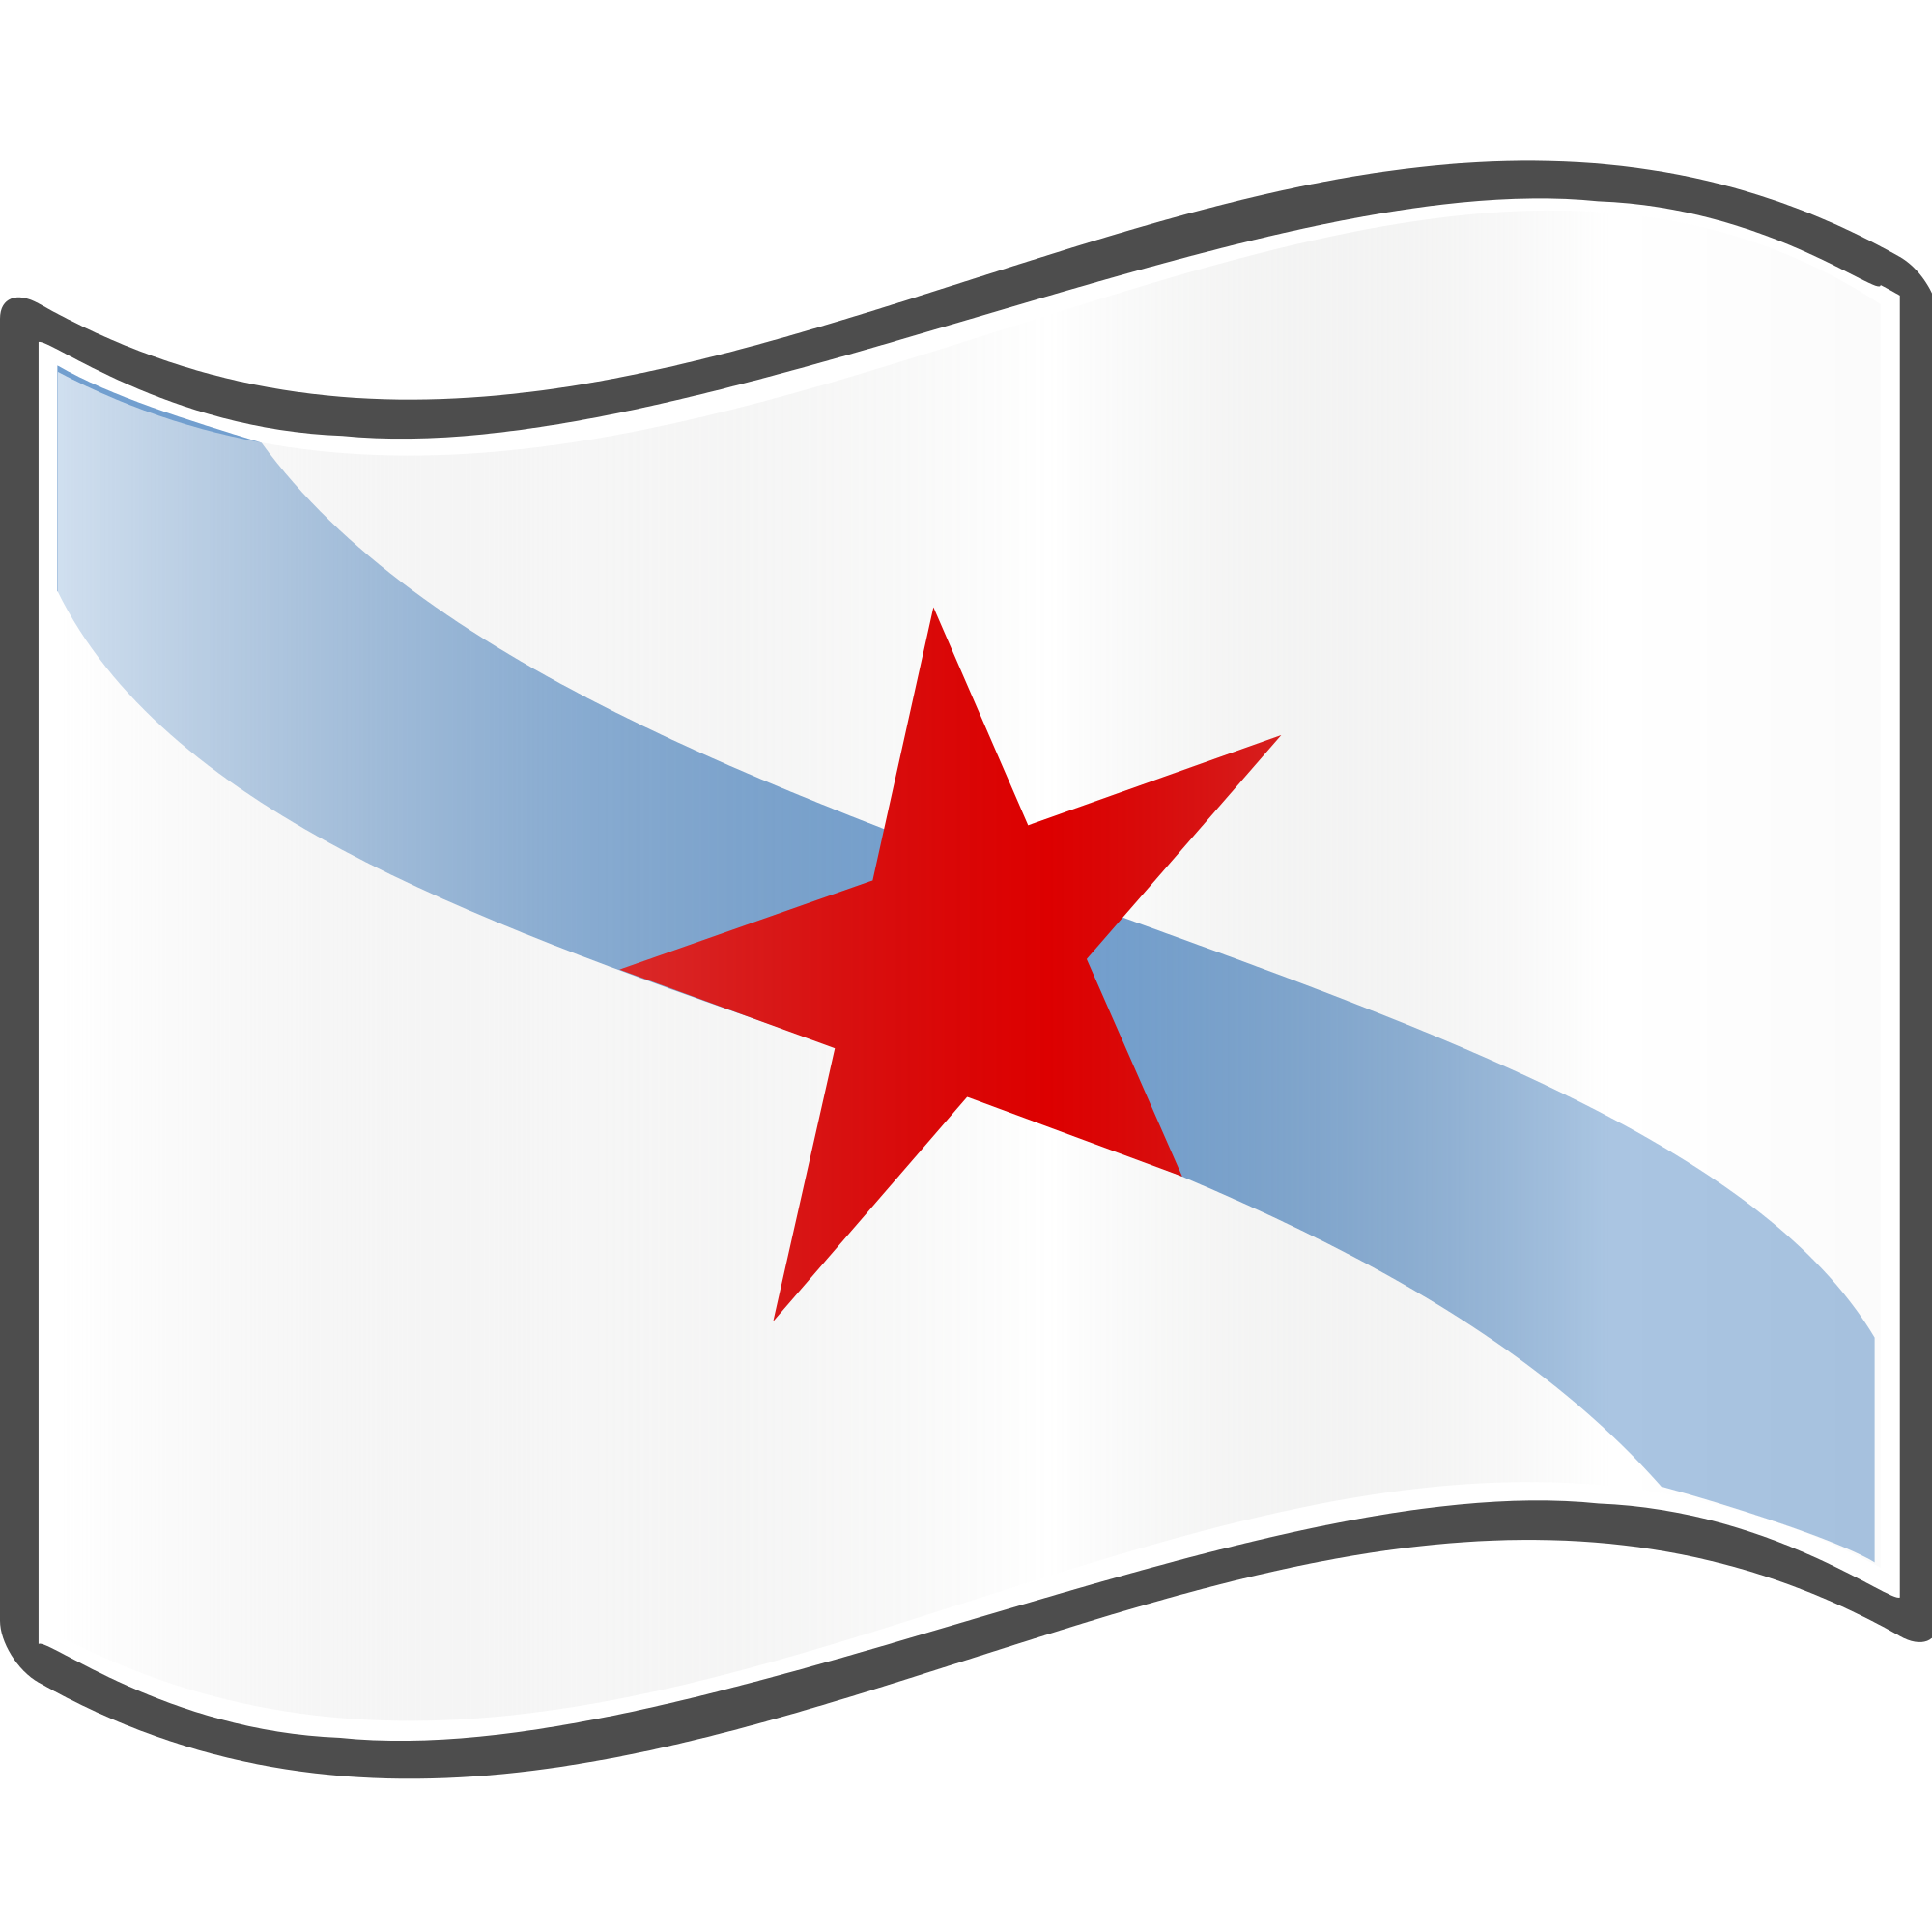 File:Nuvola Galician flag starred.svg.